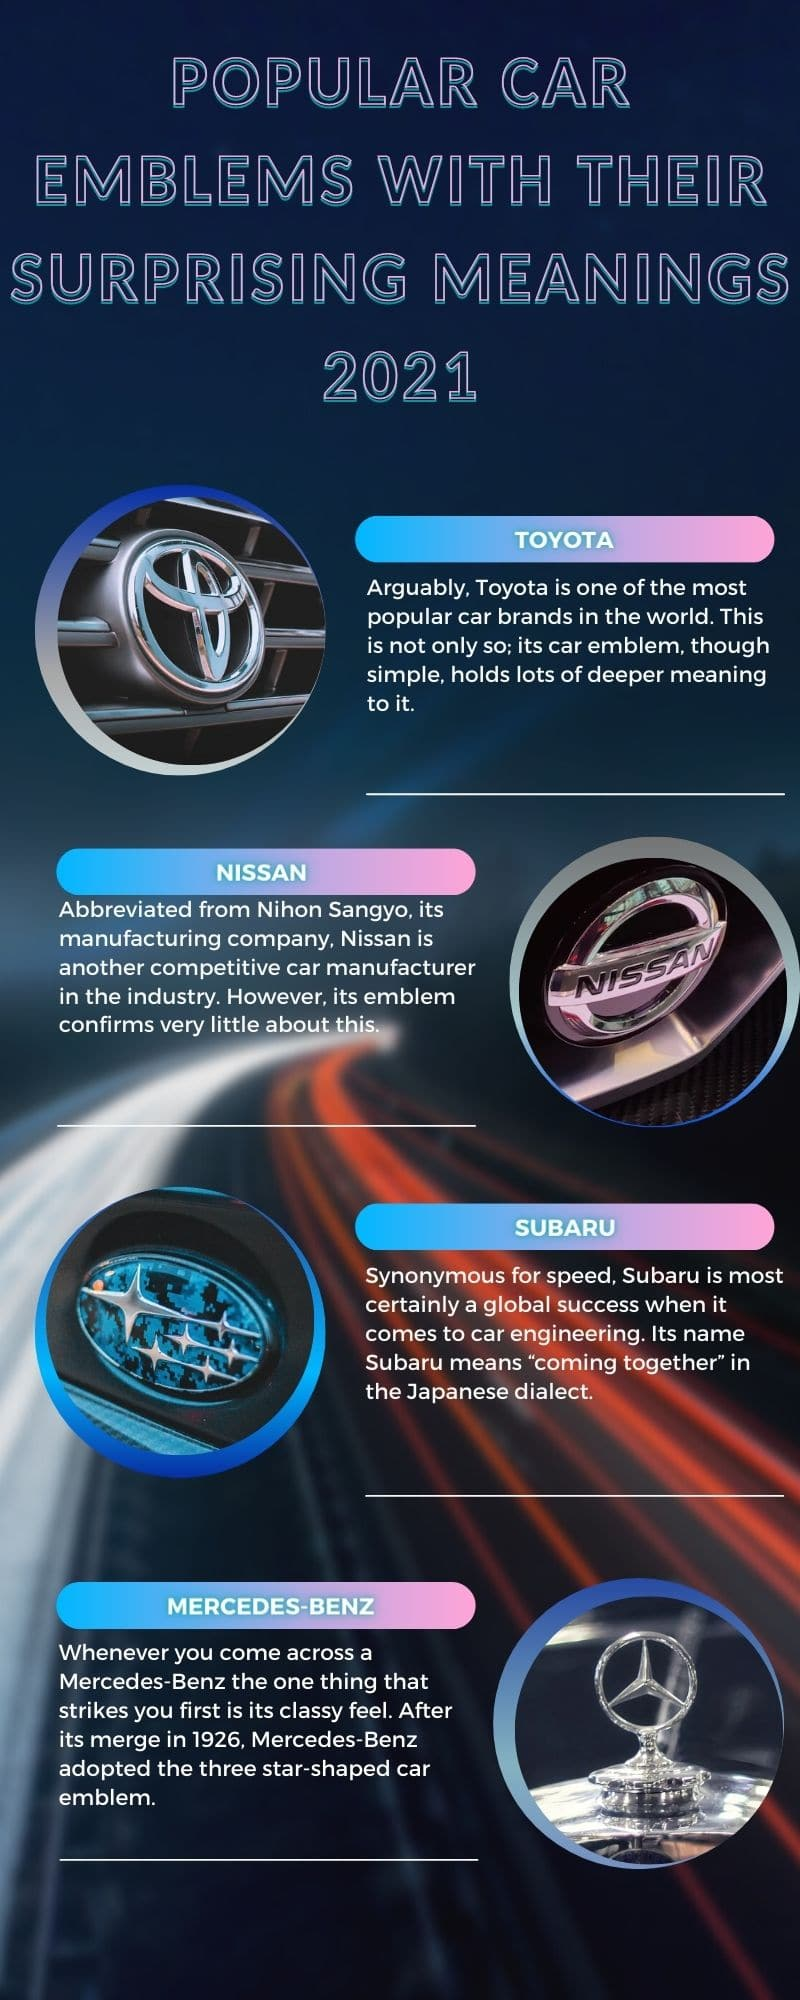 car emblems with their meanings